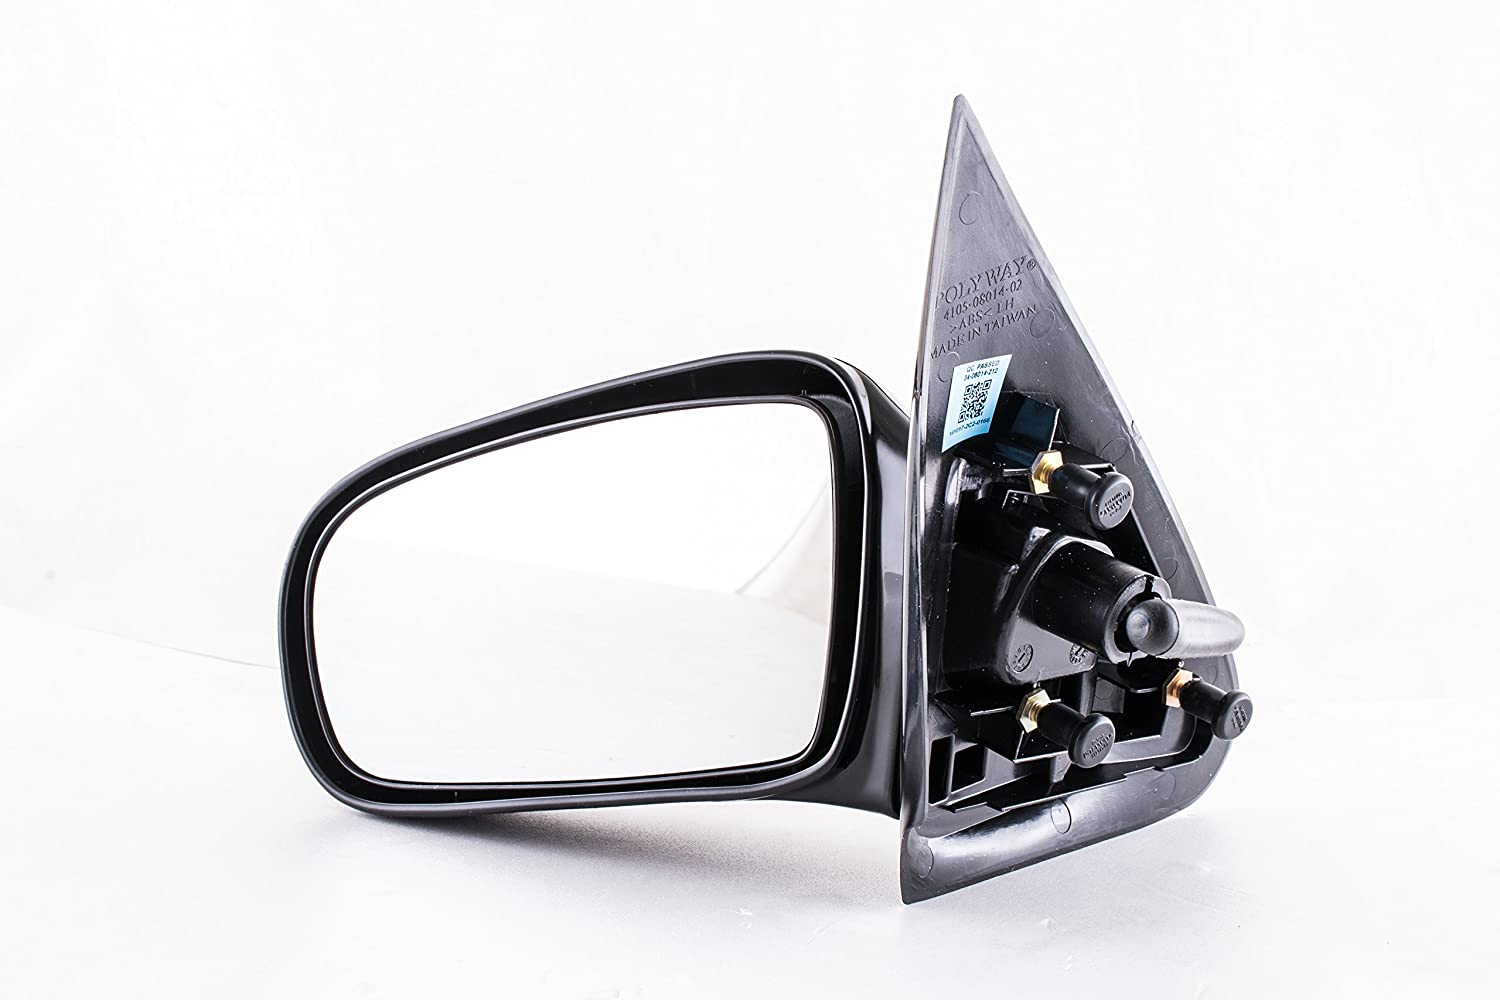 Driver Side Mirror for Chevy Cavalier, Pontiac Sunfire Coupe (1995 1996 1997 1998 1999 2000 2001 2002 2003 2004 2005) Unpainted Non-heated Non-Folding Left Rear View Replacement Door Mirror Dependable Direct